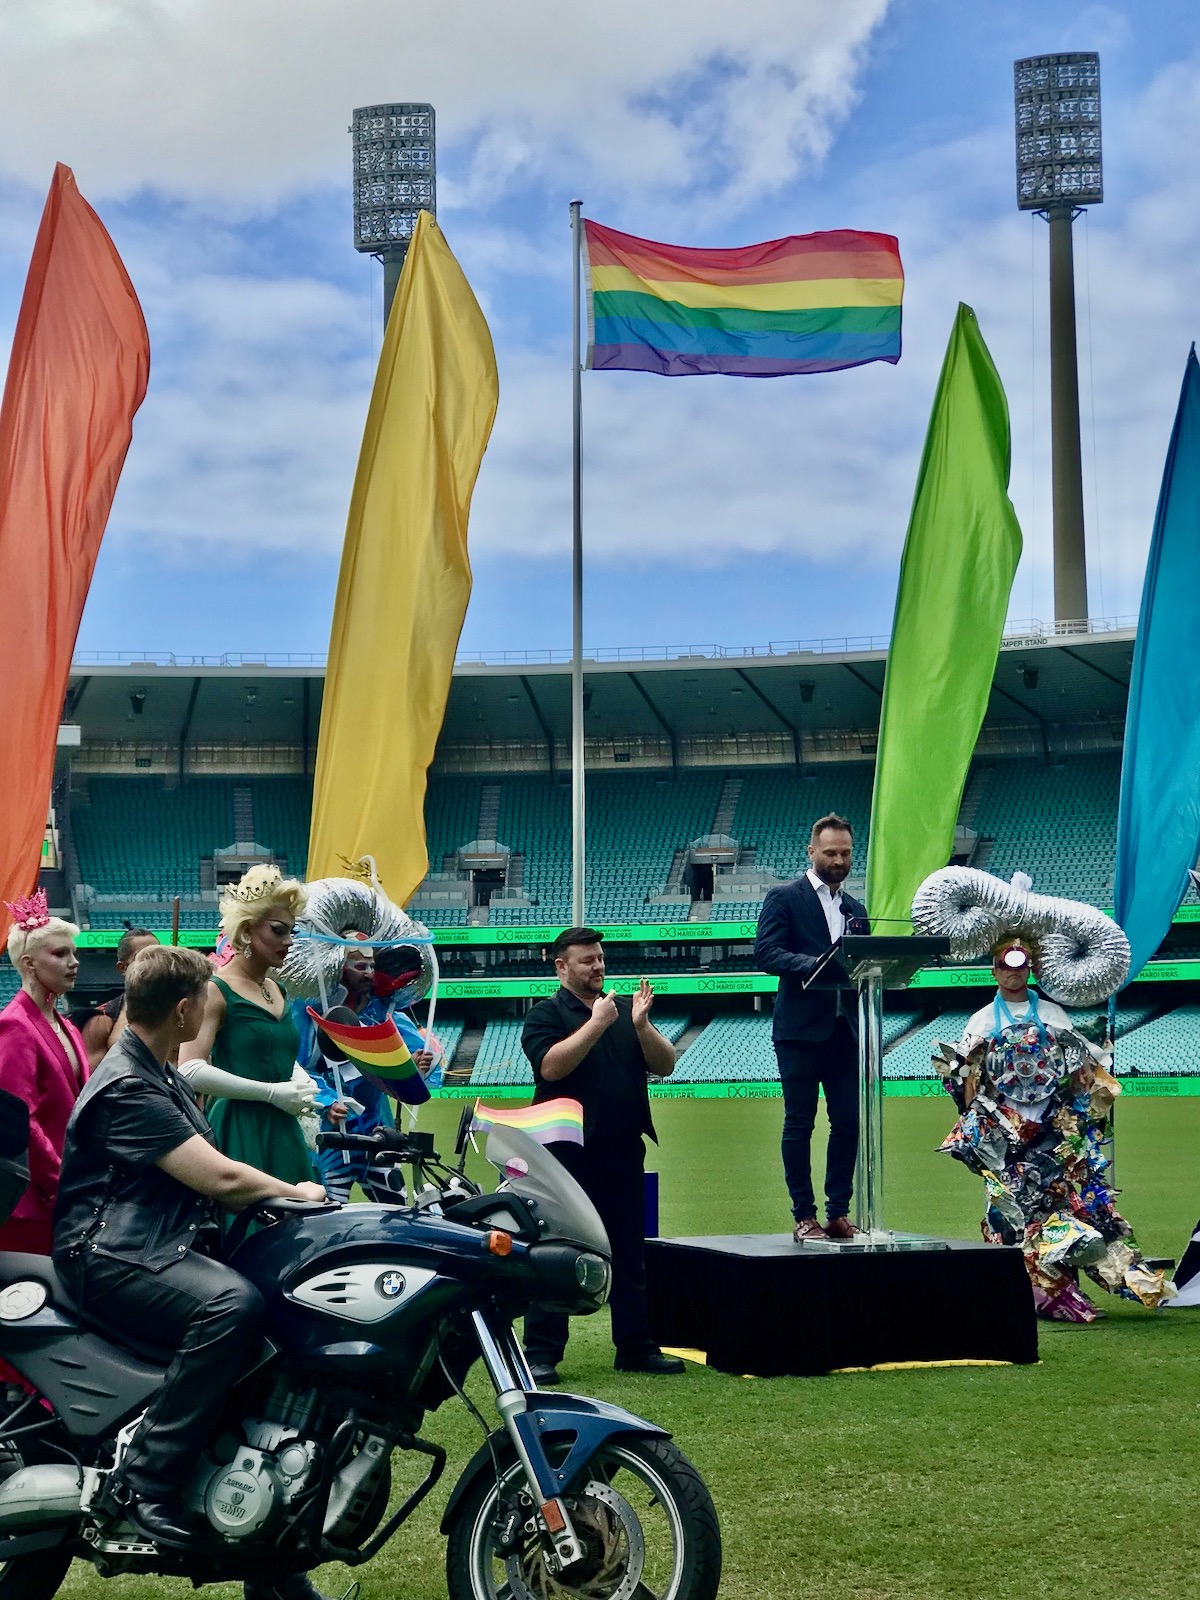 20201108 2021 Mardi Gras Announcement at the SCG 003